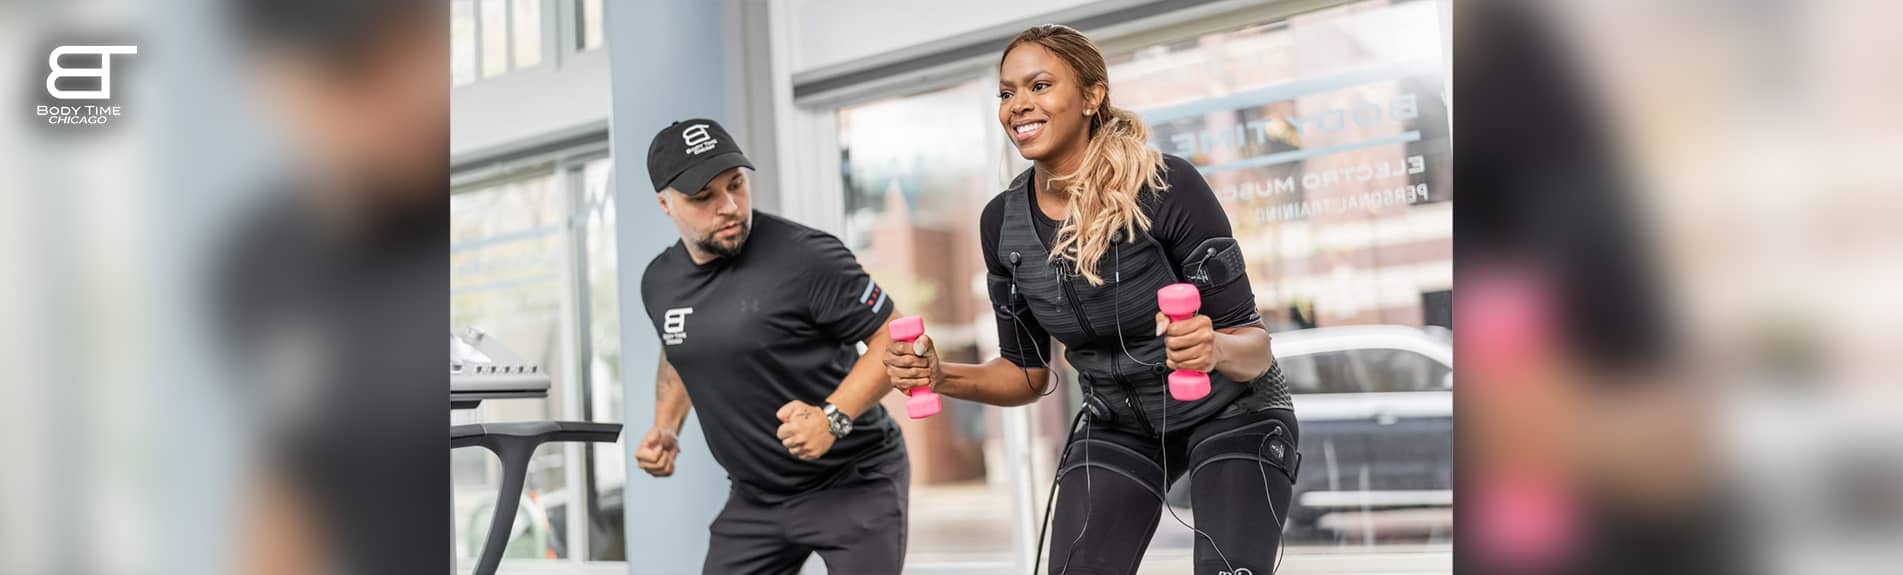 Body Toning with Fast EMS workout in Chicago -Body Time Chicago